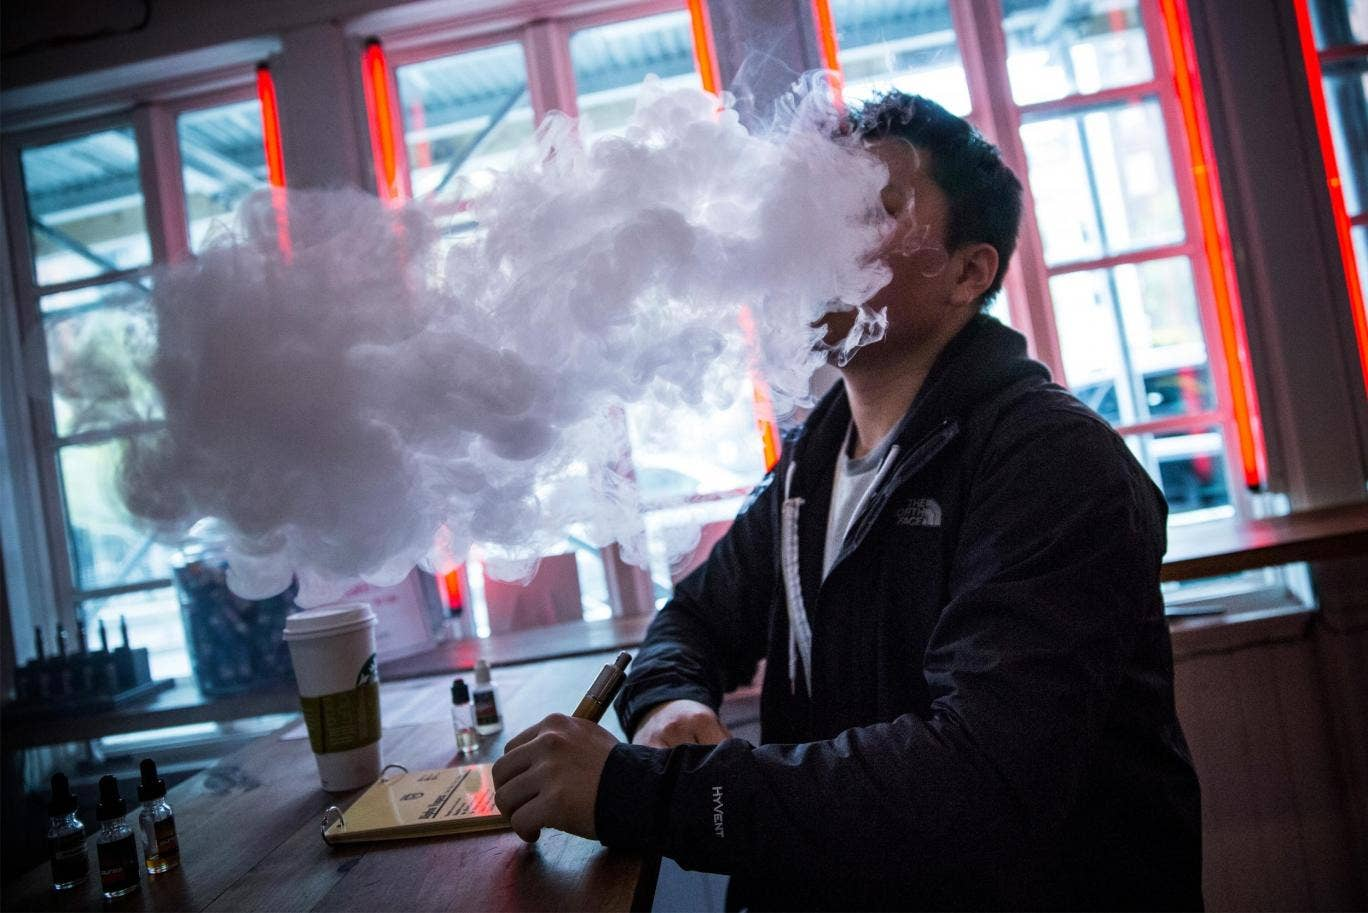 Vaping: Survey shows e-cigarettes do reduce the rate of smoking